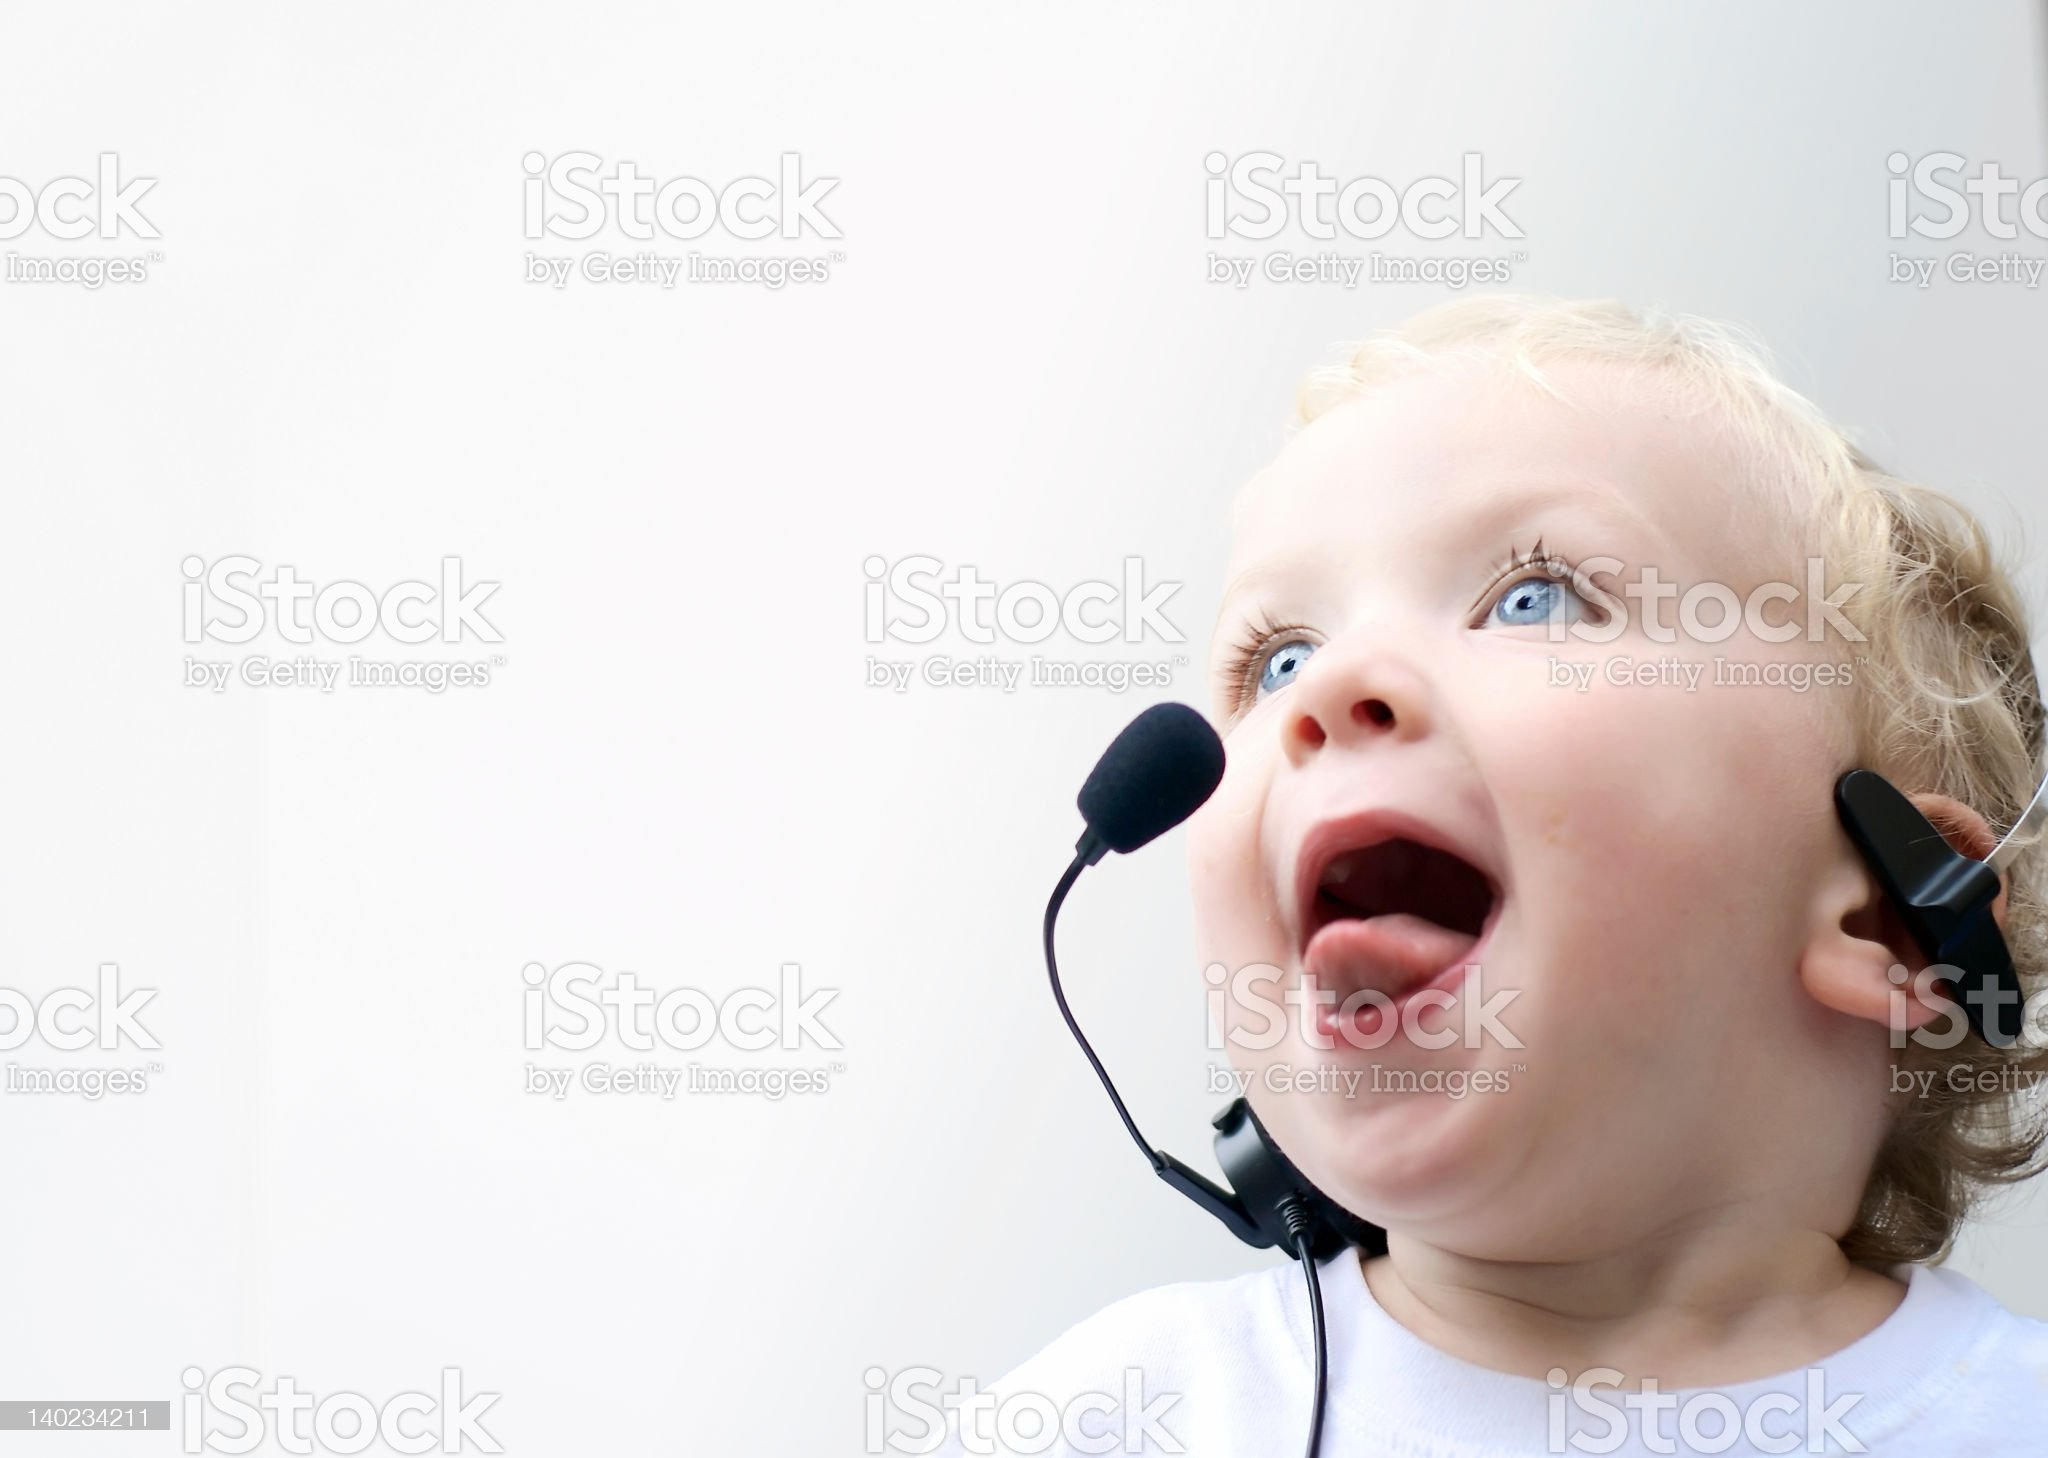 Young boy wearing phone headset royalty-free stock photo